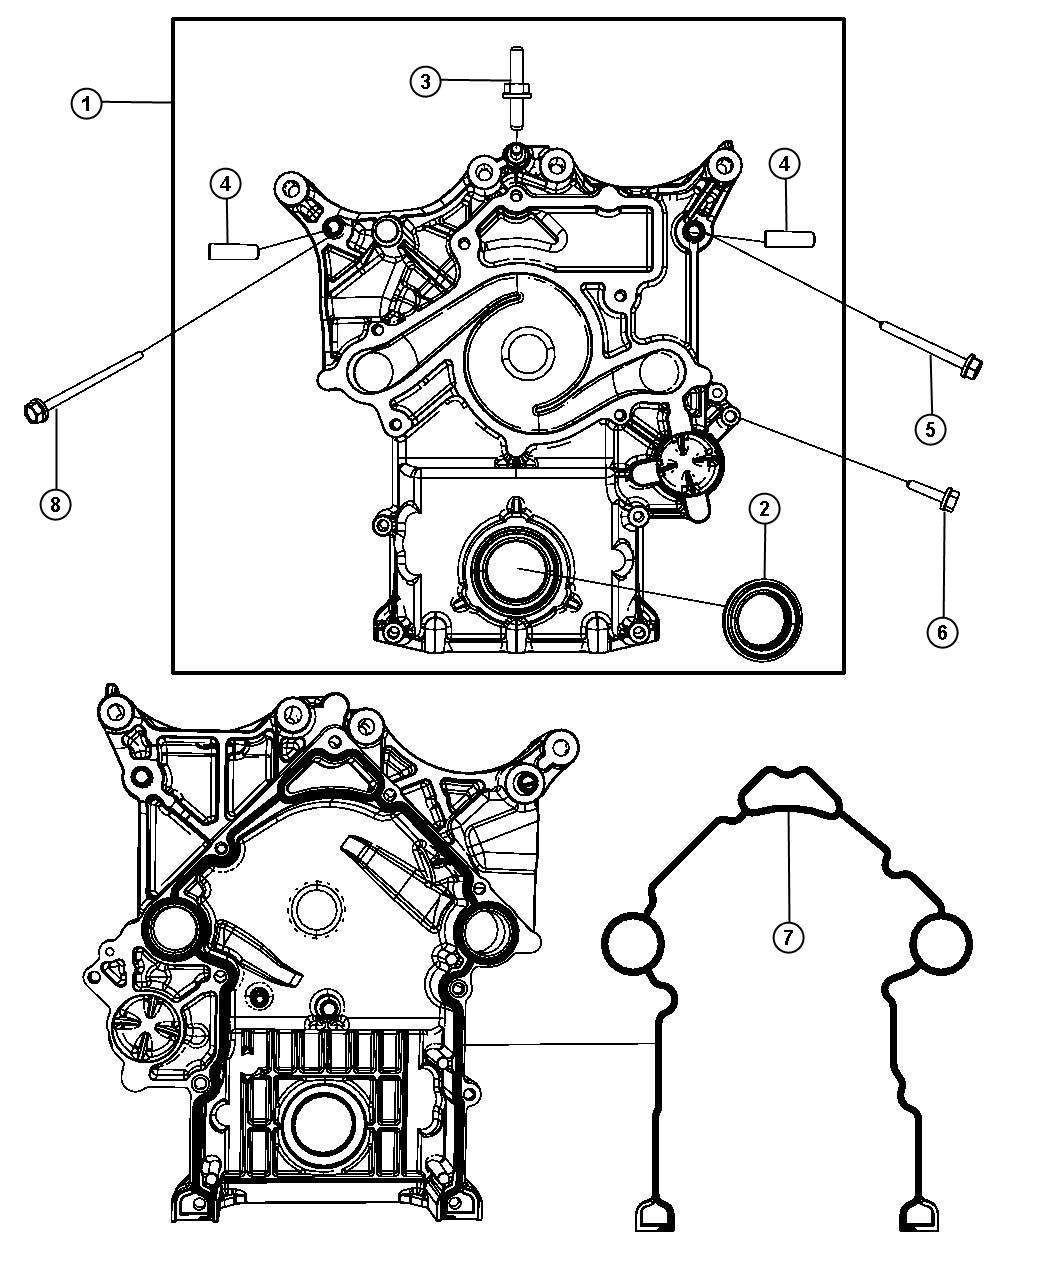 i2204859  L Hemi Engine Gasket Diagram on jeep grand cherokee, jeep cherokee, performance parts, engine pulley part number, engine pulley schematic, v8 horsepower, intake manifold upgrade,